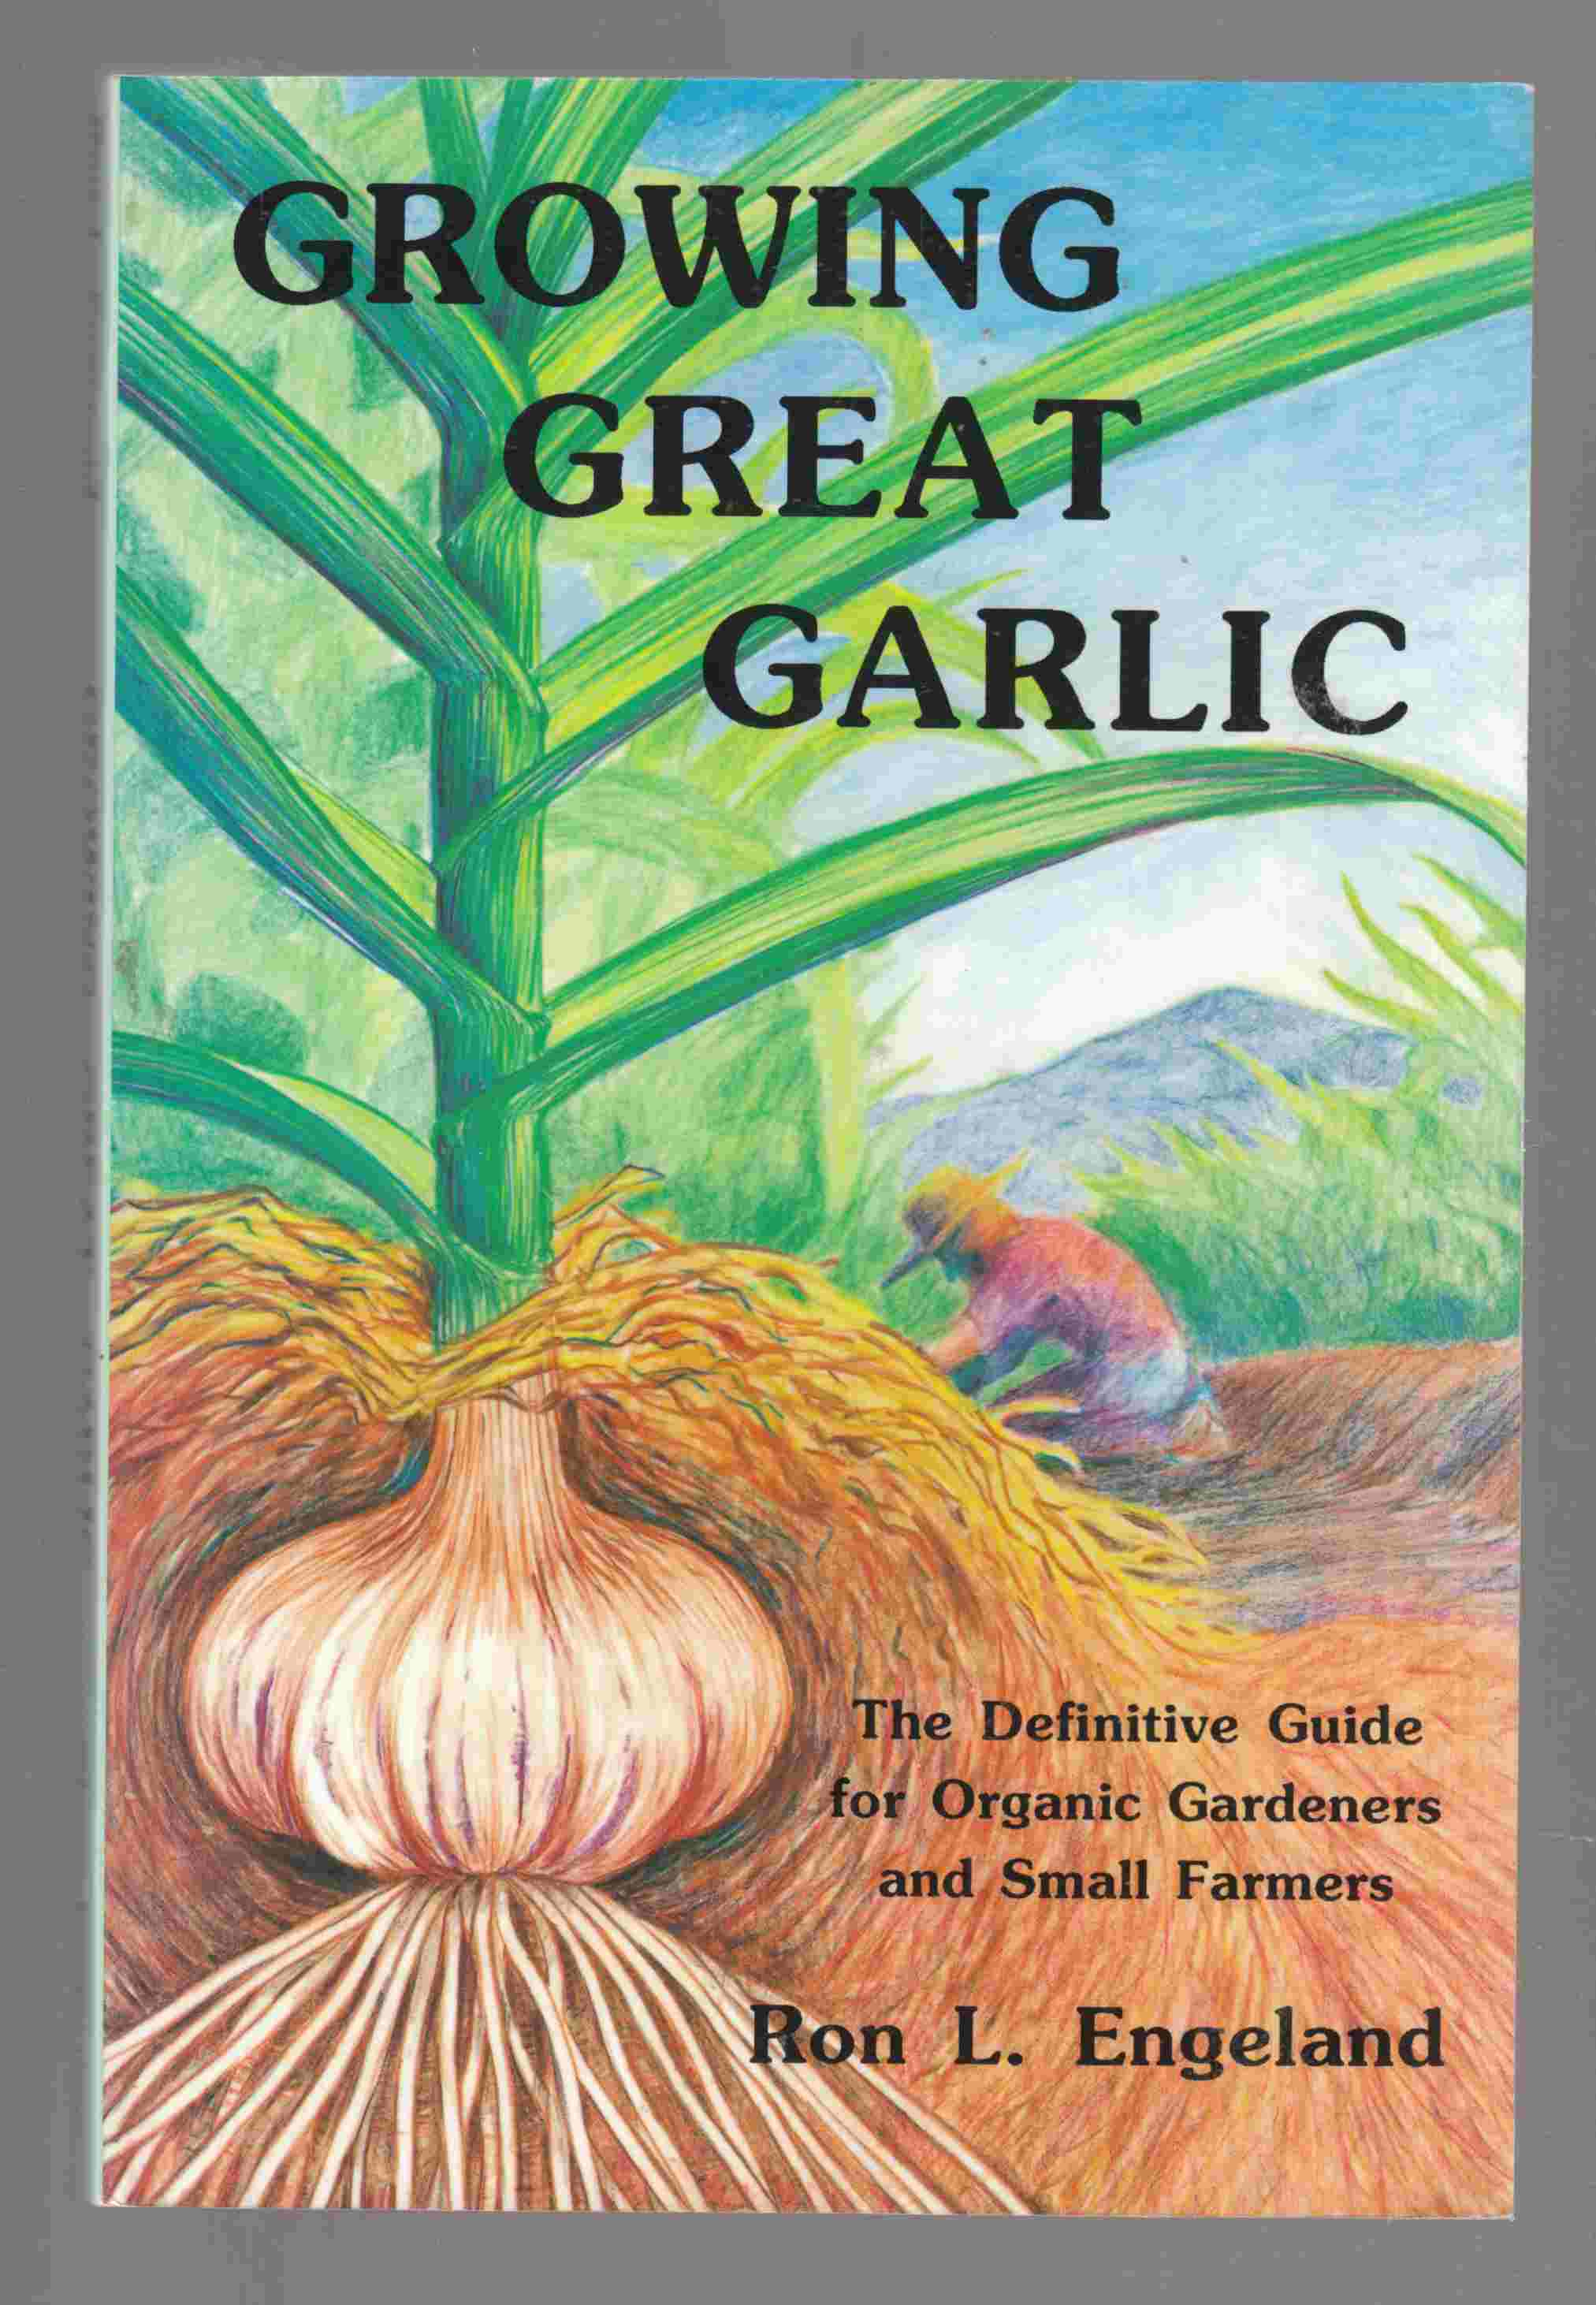 Image for Growing Great Garlic The Definitive Guide for Organic Gardeners and Small Farmers